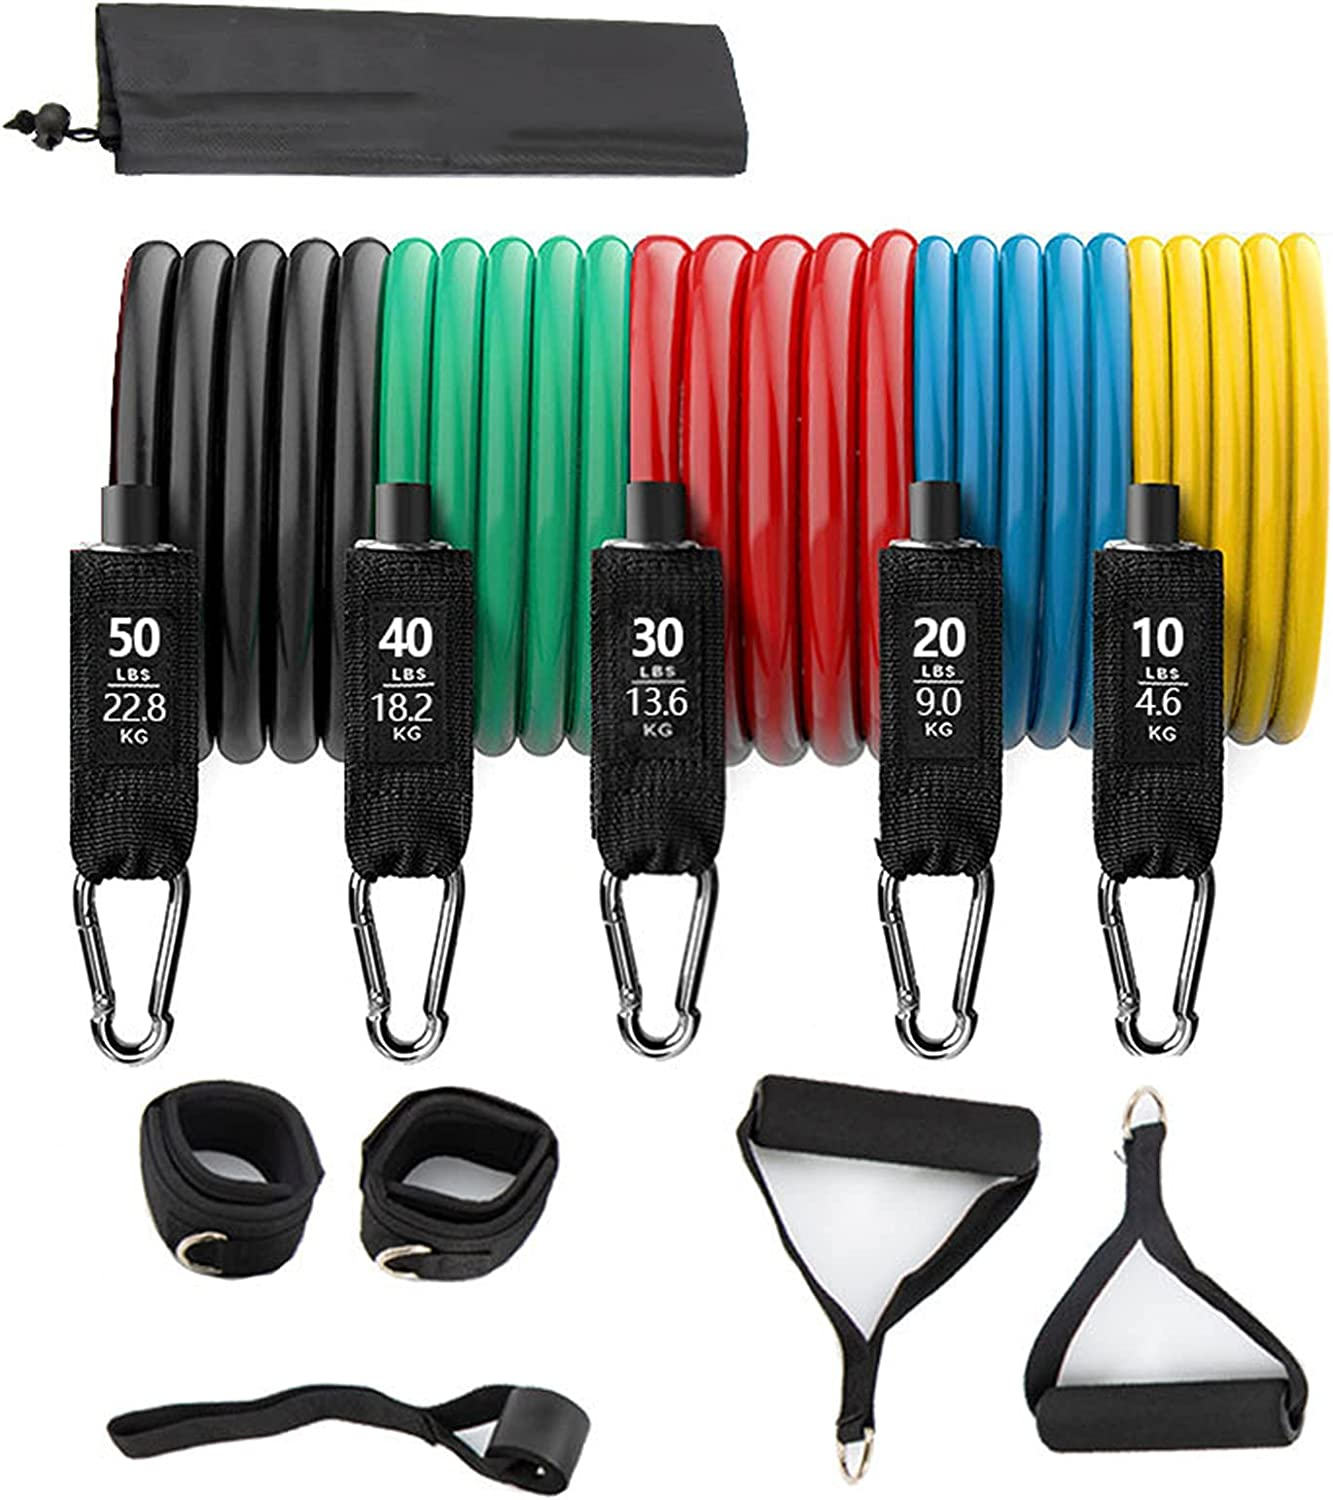 Portable 40% OFF Cheap Sale fitness equipment muscle training sculpting 35% OFF r body yoga